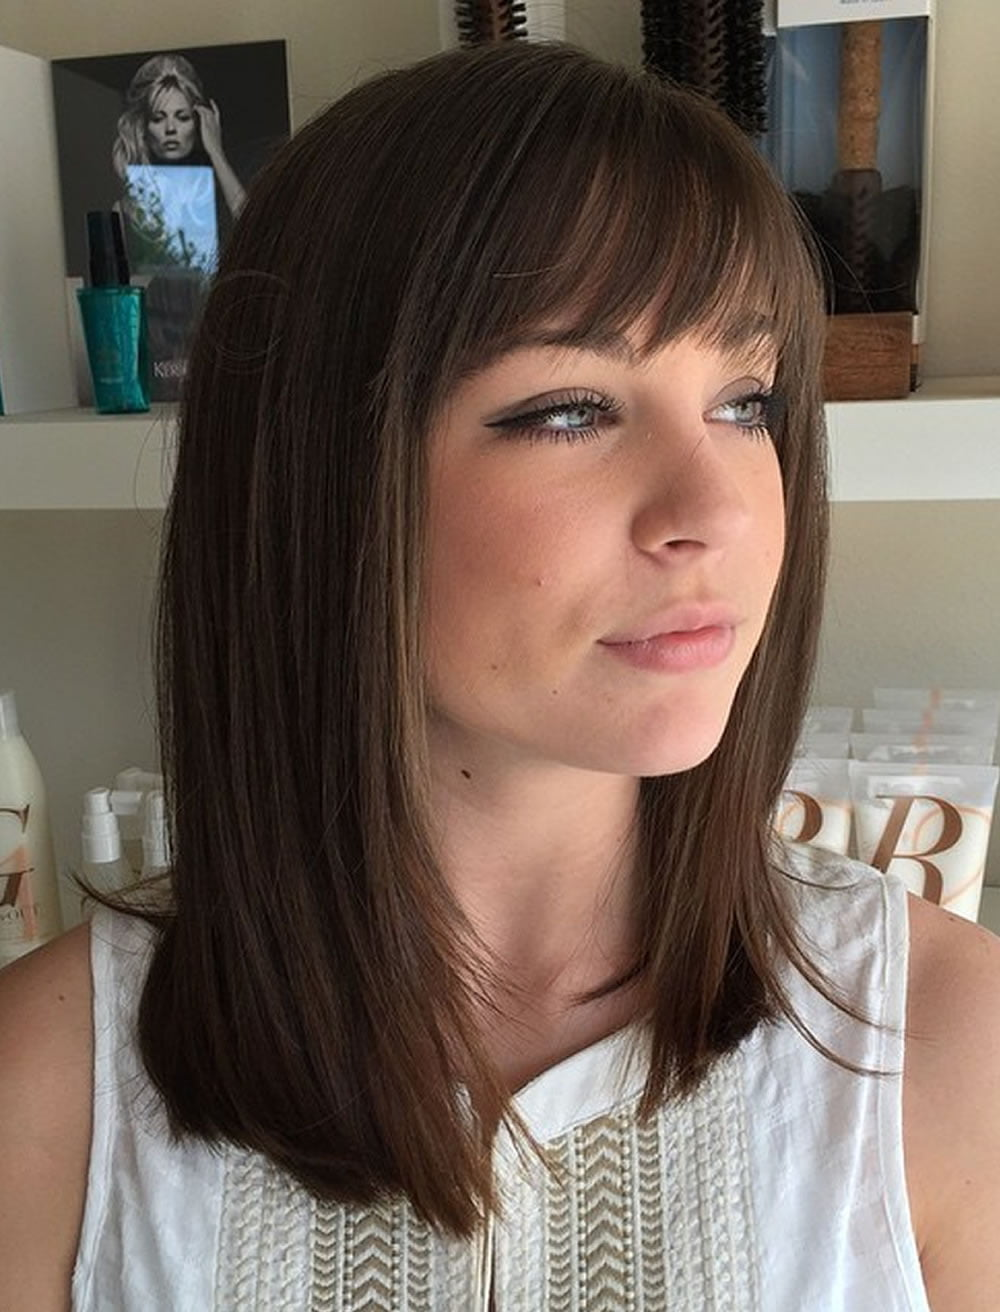 Easy medium length haircuts for women 2019 - Page 3 of 6